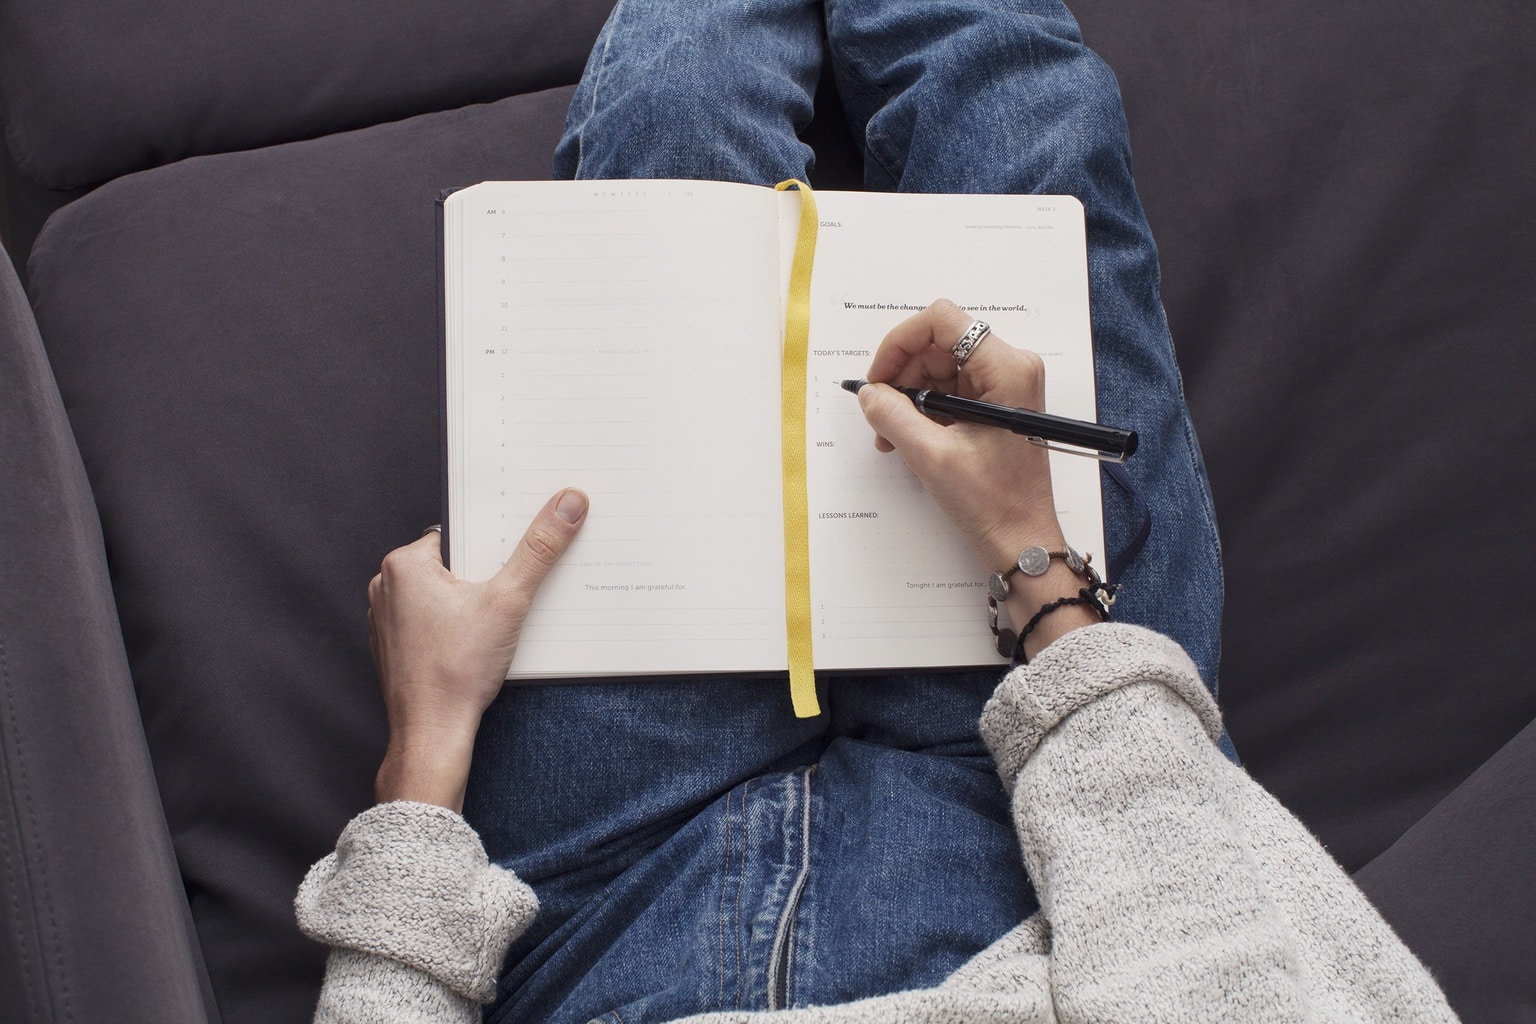 Girl with blue jeans writing in journal